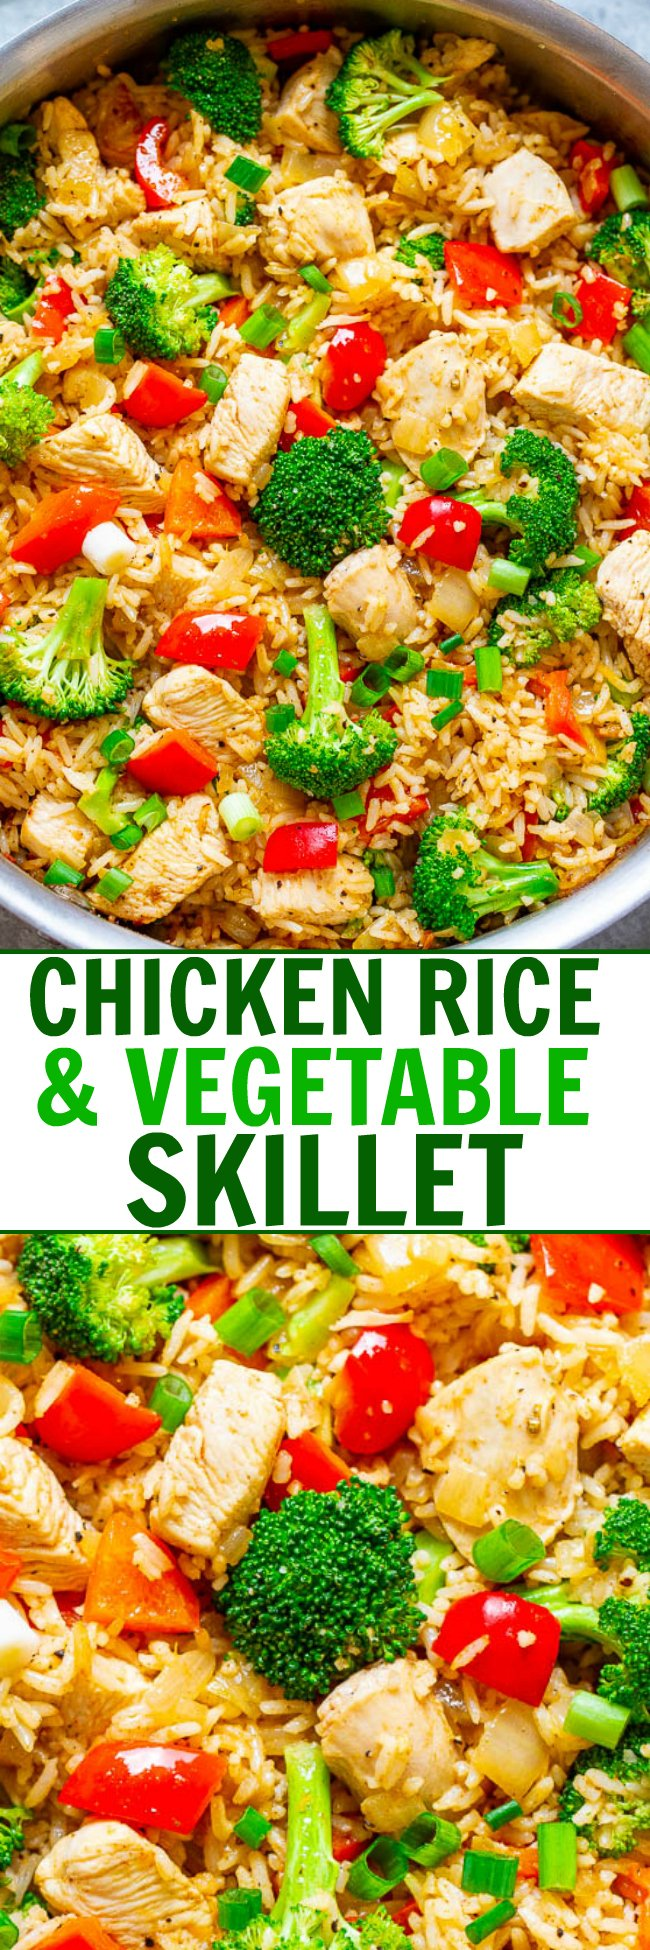 Chicken and Rice Skillet with Veggies – EASY, ready in 20 minutes, made in ONE skillet with everyday ingredients you probably have on hand!! A HEALTHY weeknight dinner the whole family will LOVE!!